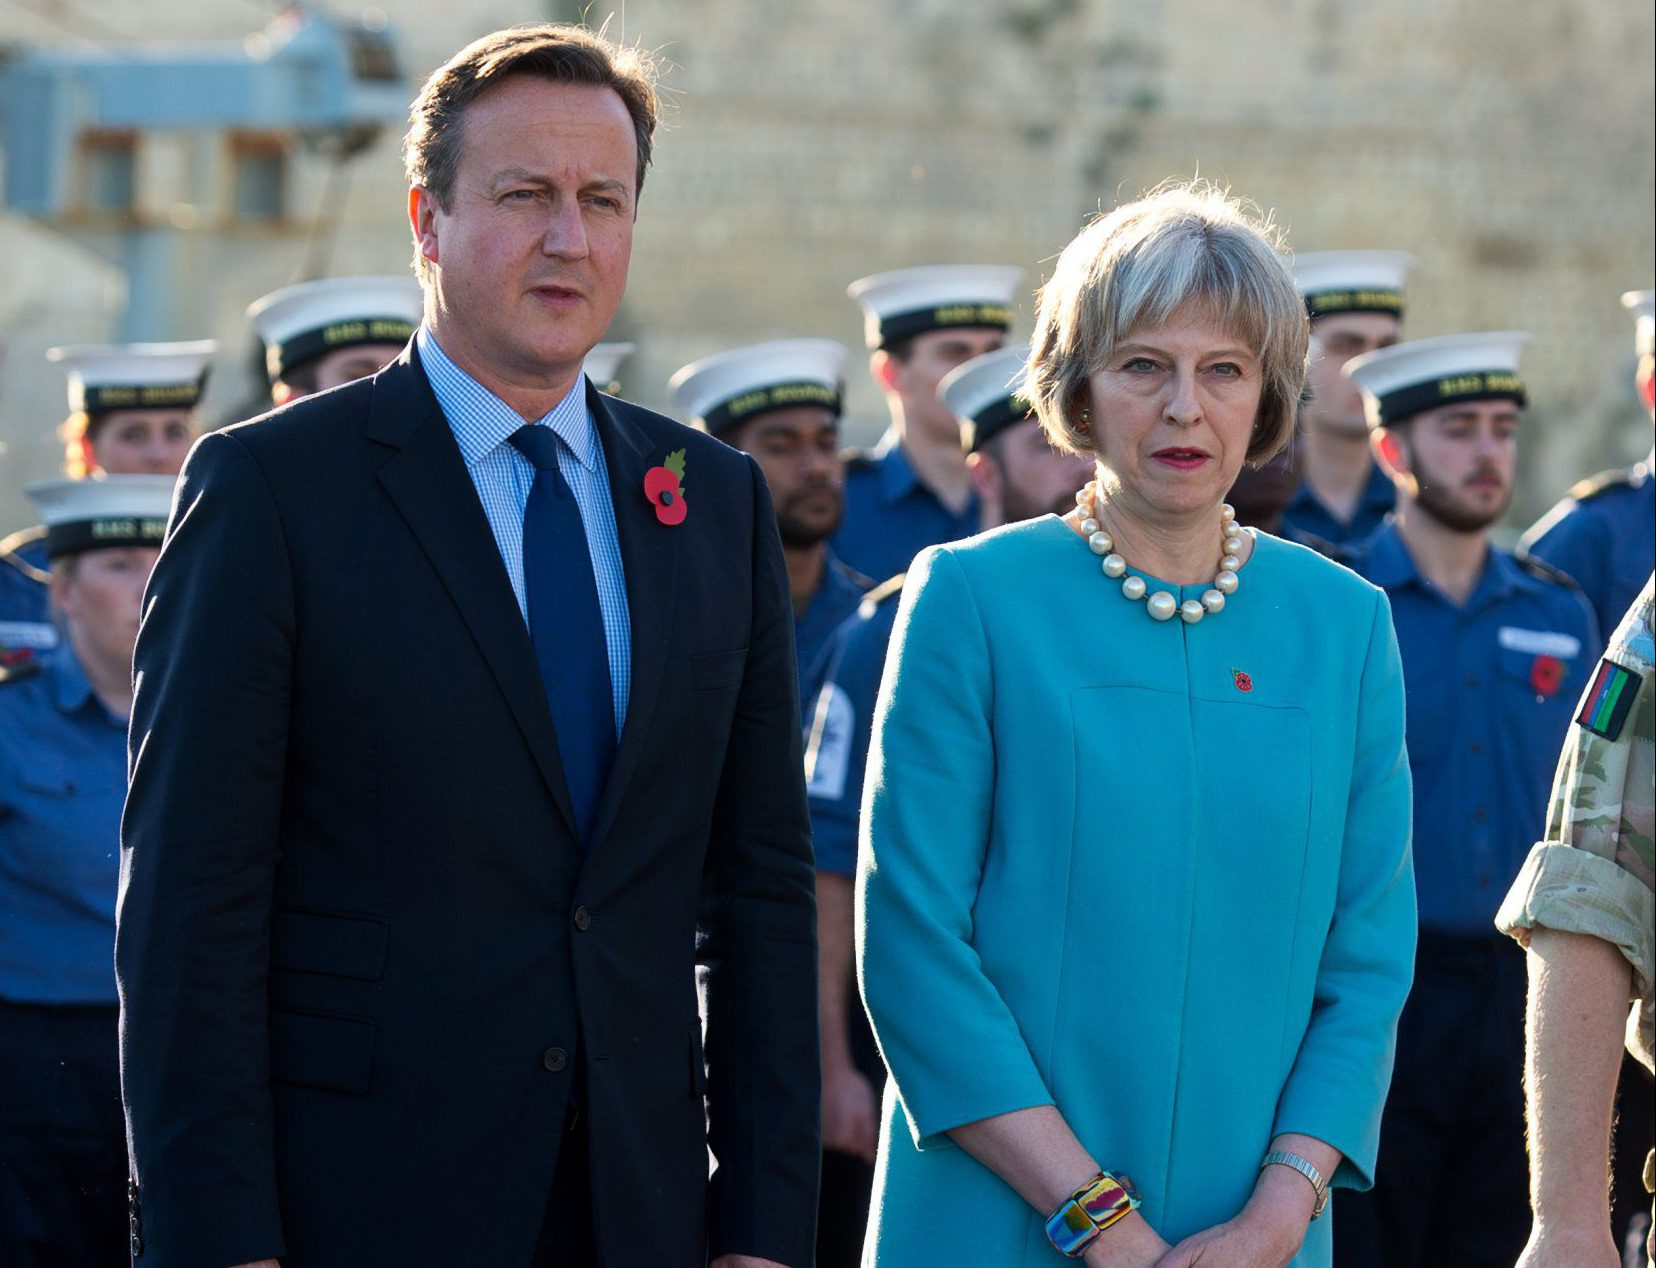 VALLETTA, MALTA - NOVEMBER 11: (L-R) British Prime Minister David Cameron and Home Secretary Theresa May attend a remembrance service on HMS Bulwark during the Valletta Summit on migration on November 11, 2015 in Valletta, Malta. The Summit will bring together representatives from the European Union and African countries to address the challenges and opportunities of the largest migration of people to Europe since World War II. (Photo by Ben Pruchnie/Getty Images)